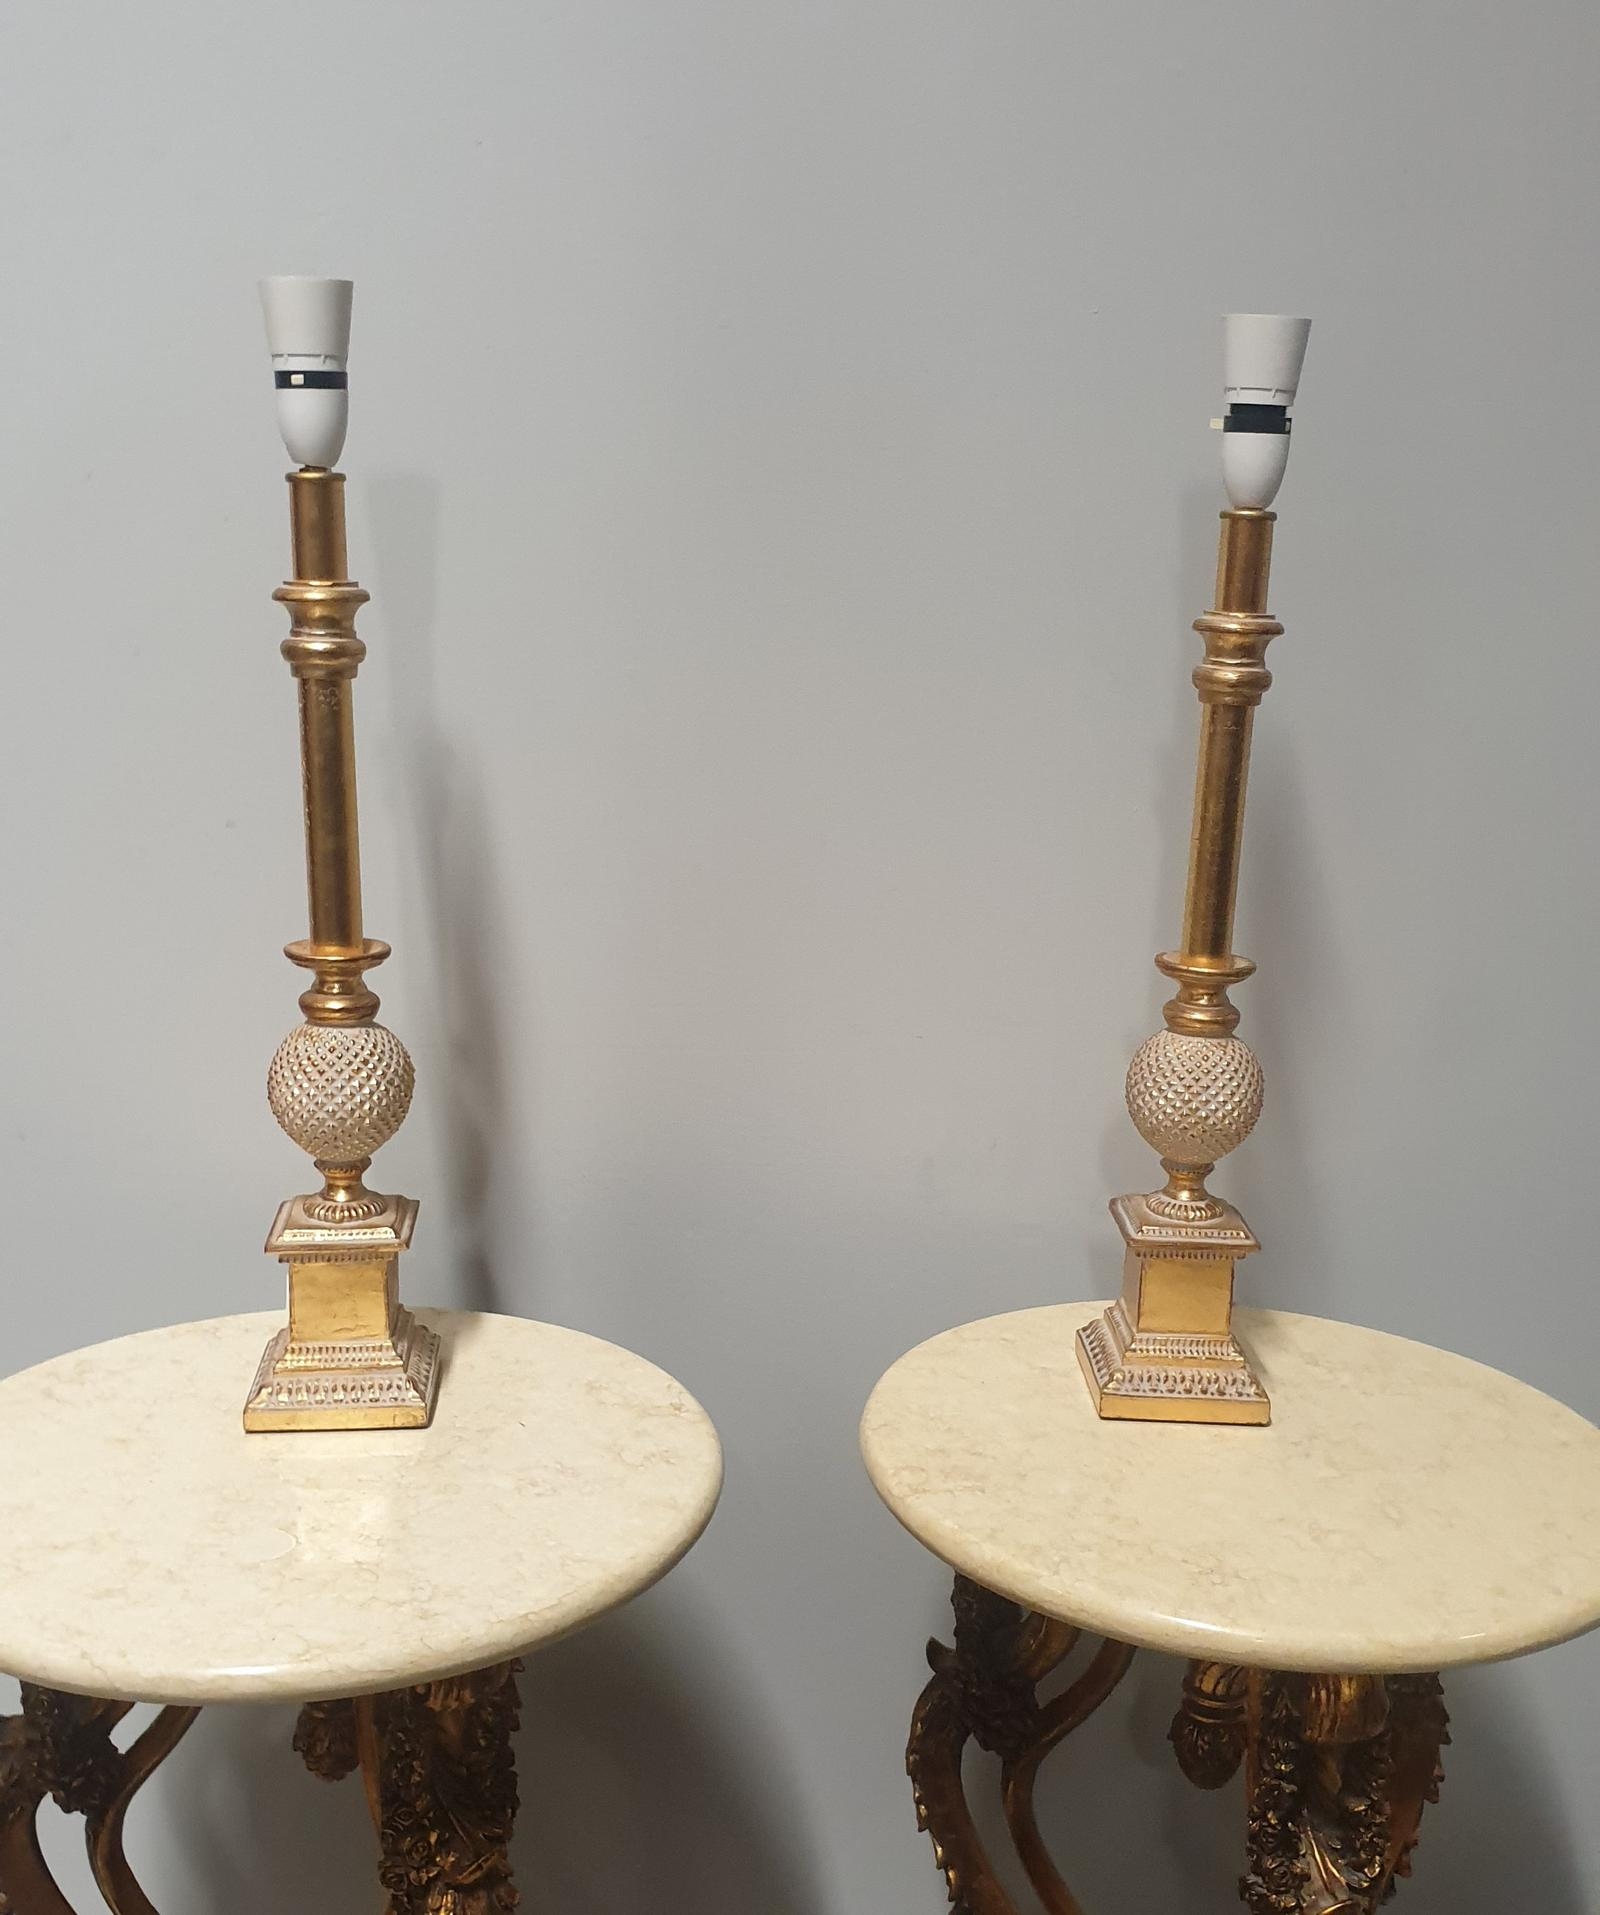 Pair of Gilt Table Lamps (1 of 1)